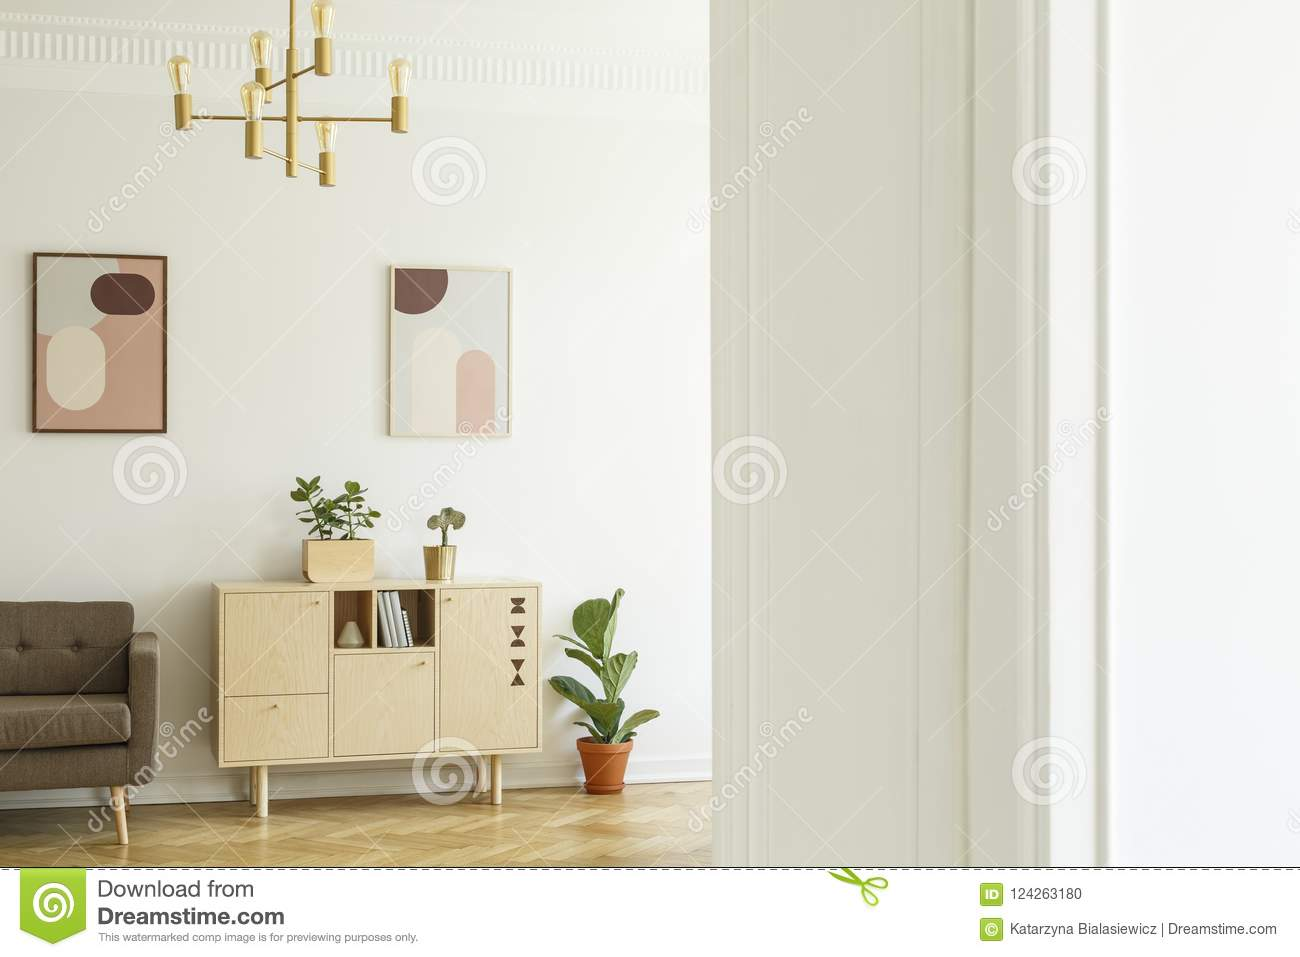 Retro Style Apartment Interior With A Minimalist Wooden Cabinet